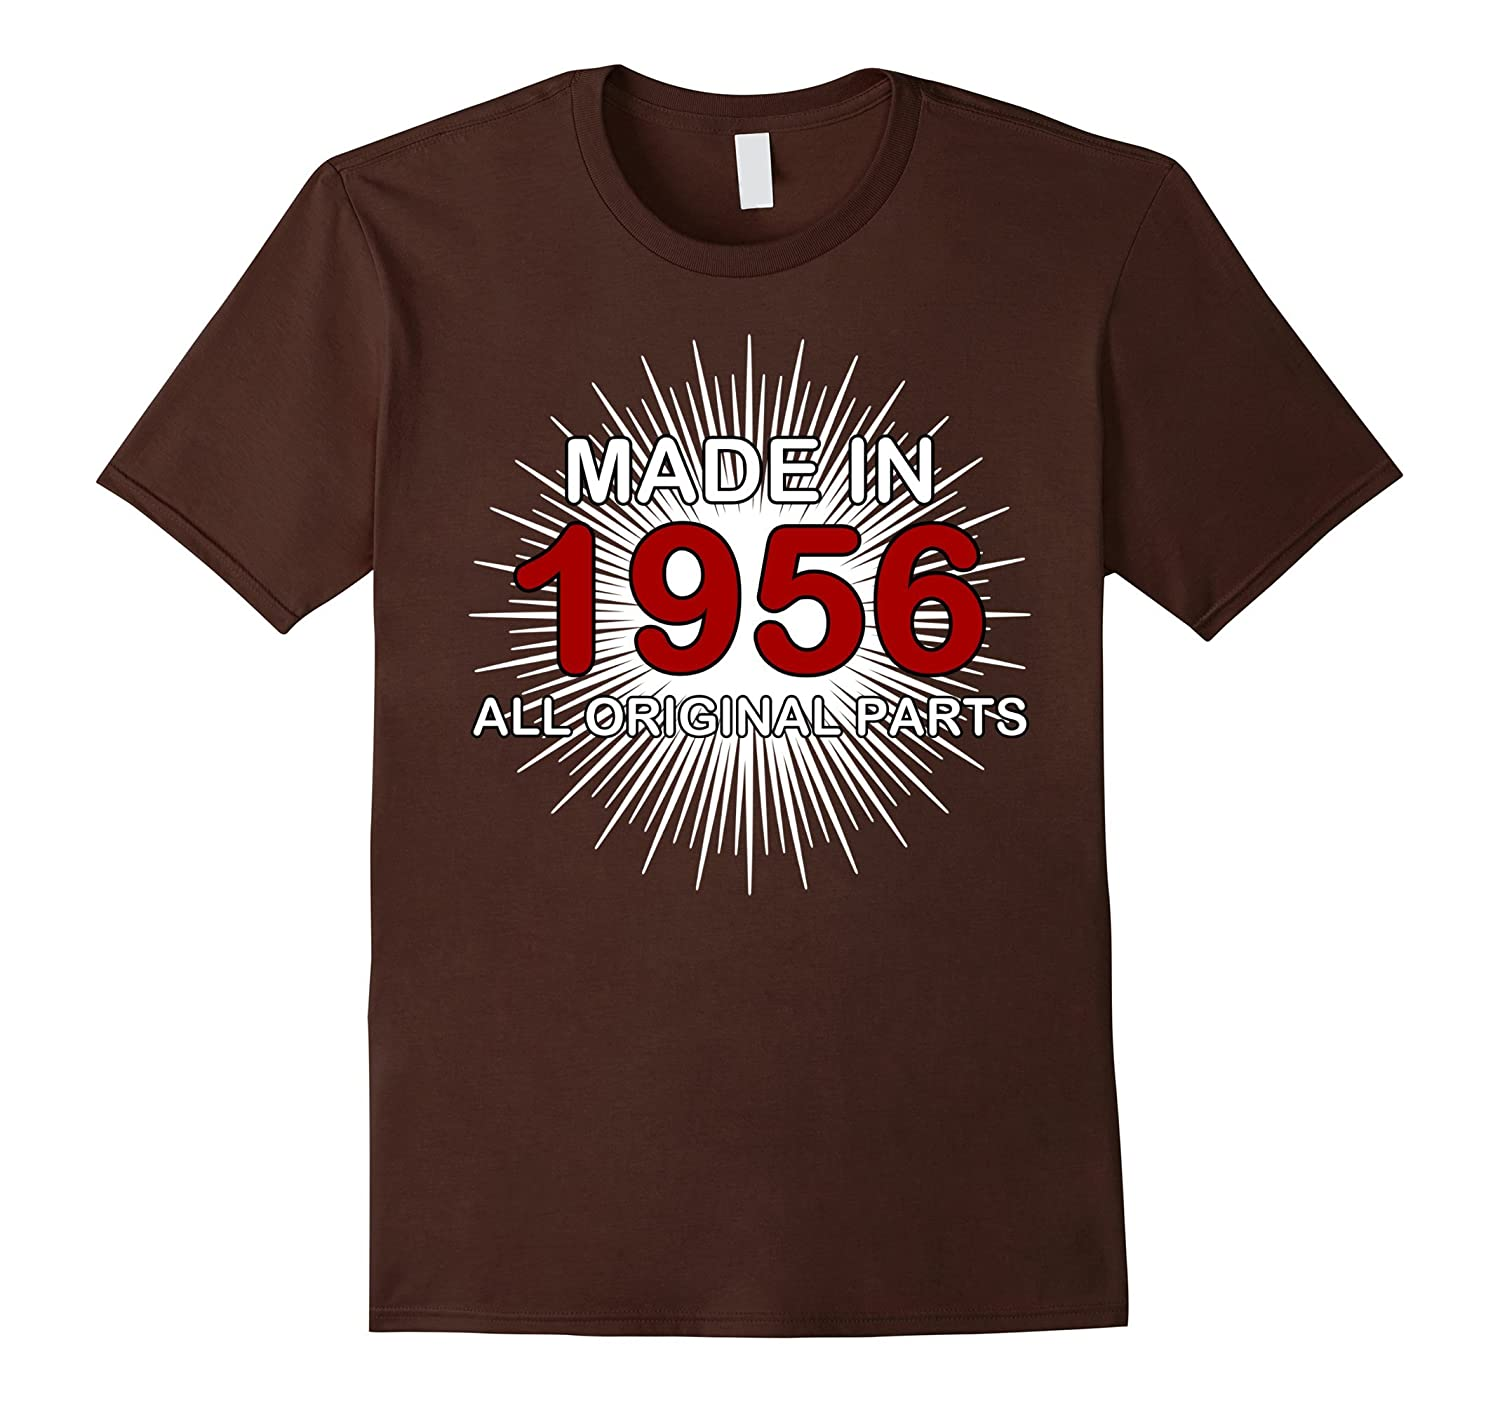 Made In 1956 T-Shirt All Original Parts